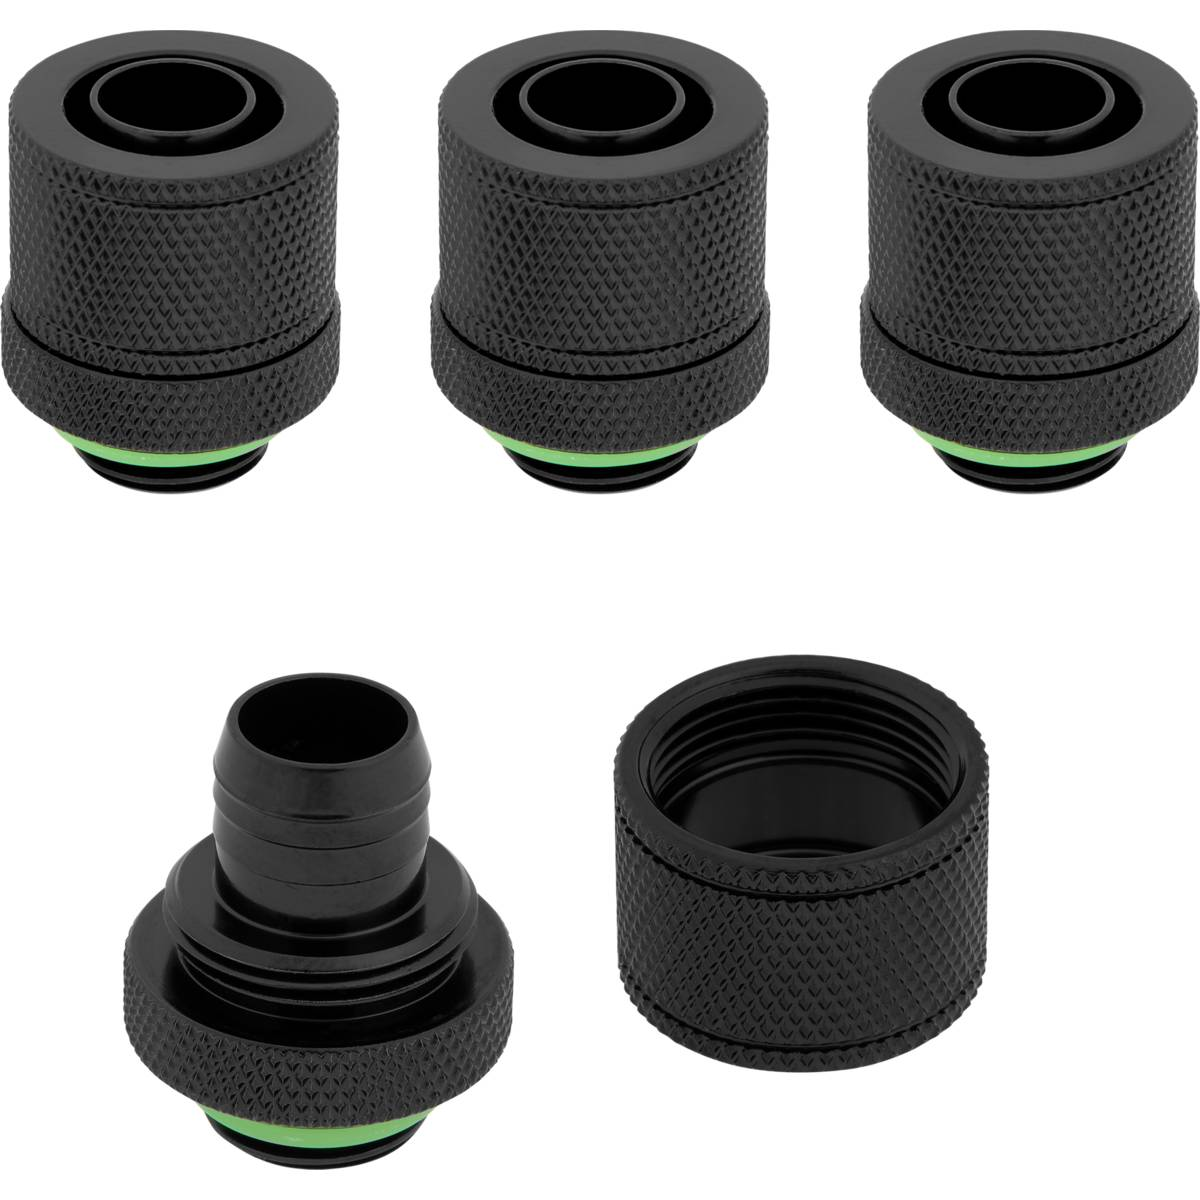 "CORSAIR Hydro X Series XF Compression 10/13mm (3/8"" / 1/2"") ID/OD Fitting Four Pack - Black"